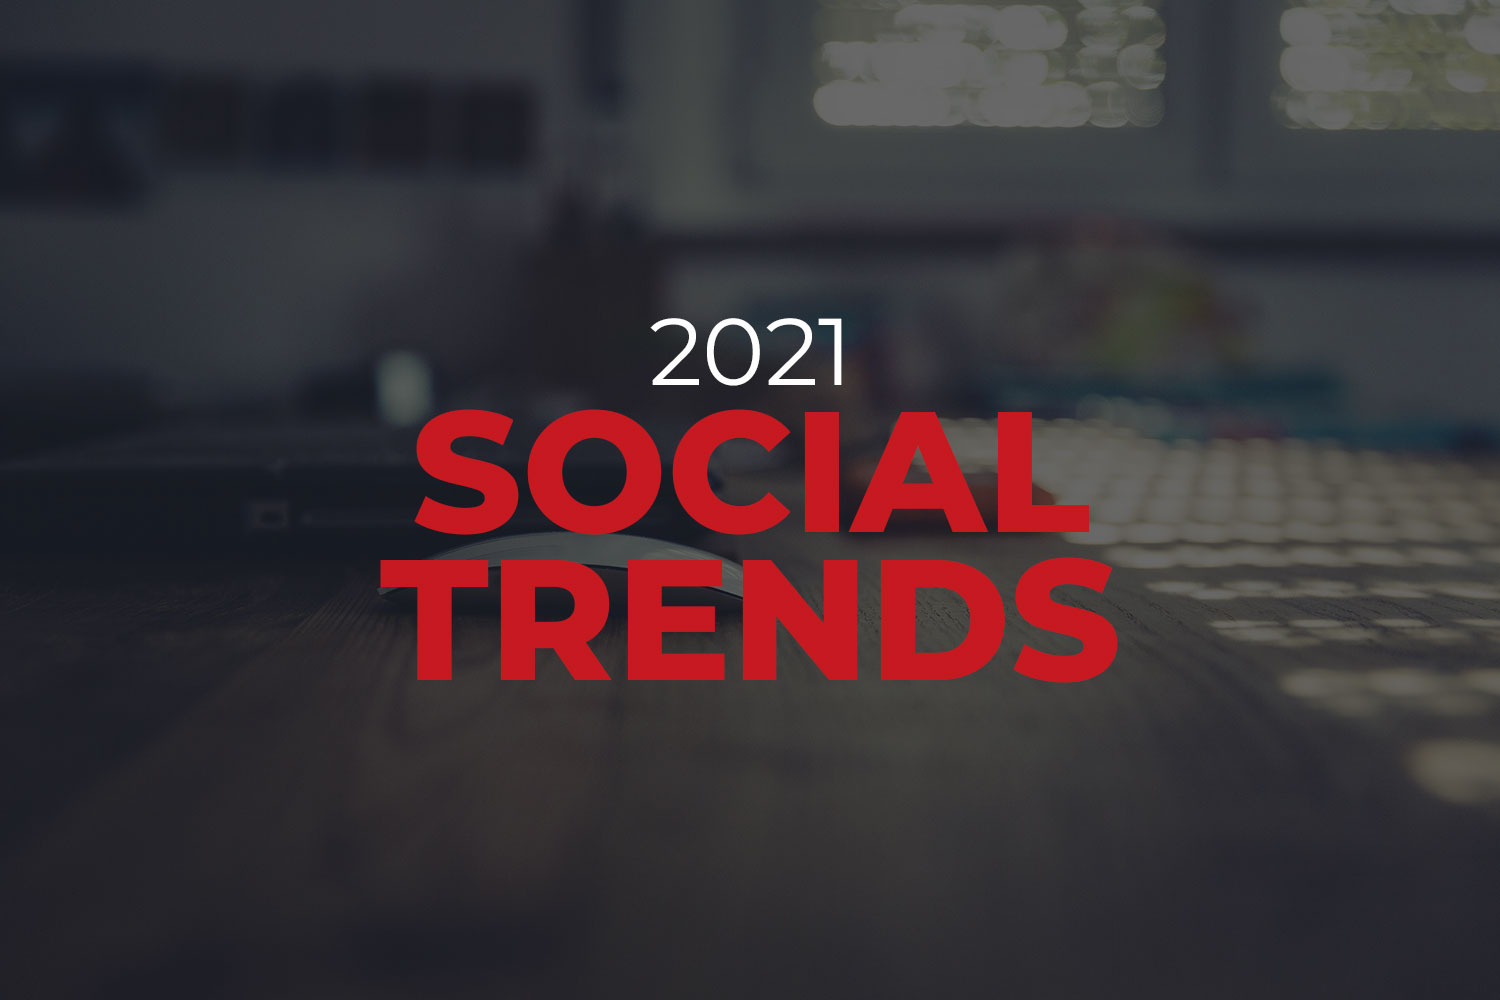 2021 social trends featured